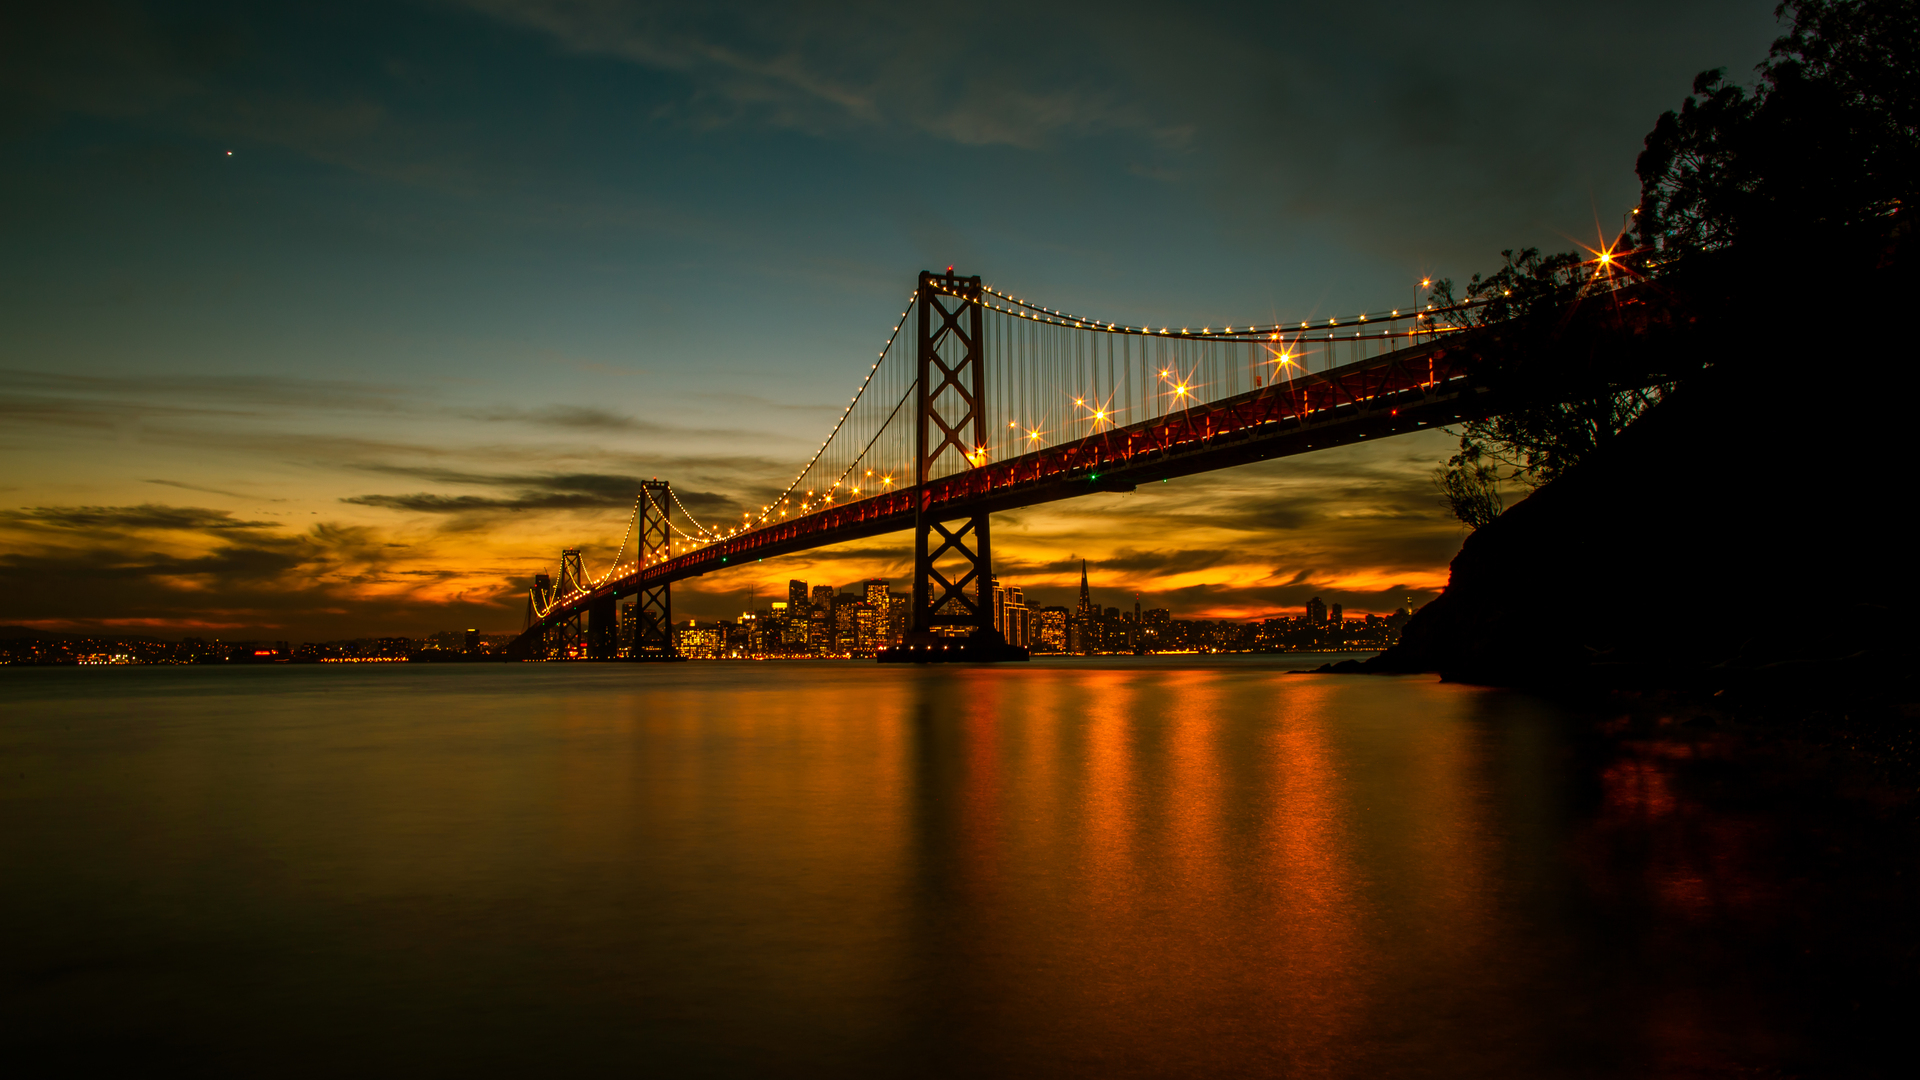 1920x1080 San Francisco Bay Bridge 5k Laptop Full Hd 1080p Hd 4k Wallpapers Images Backgrounds Photos And Pictures